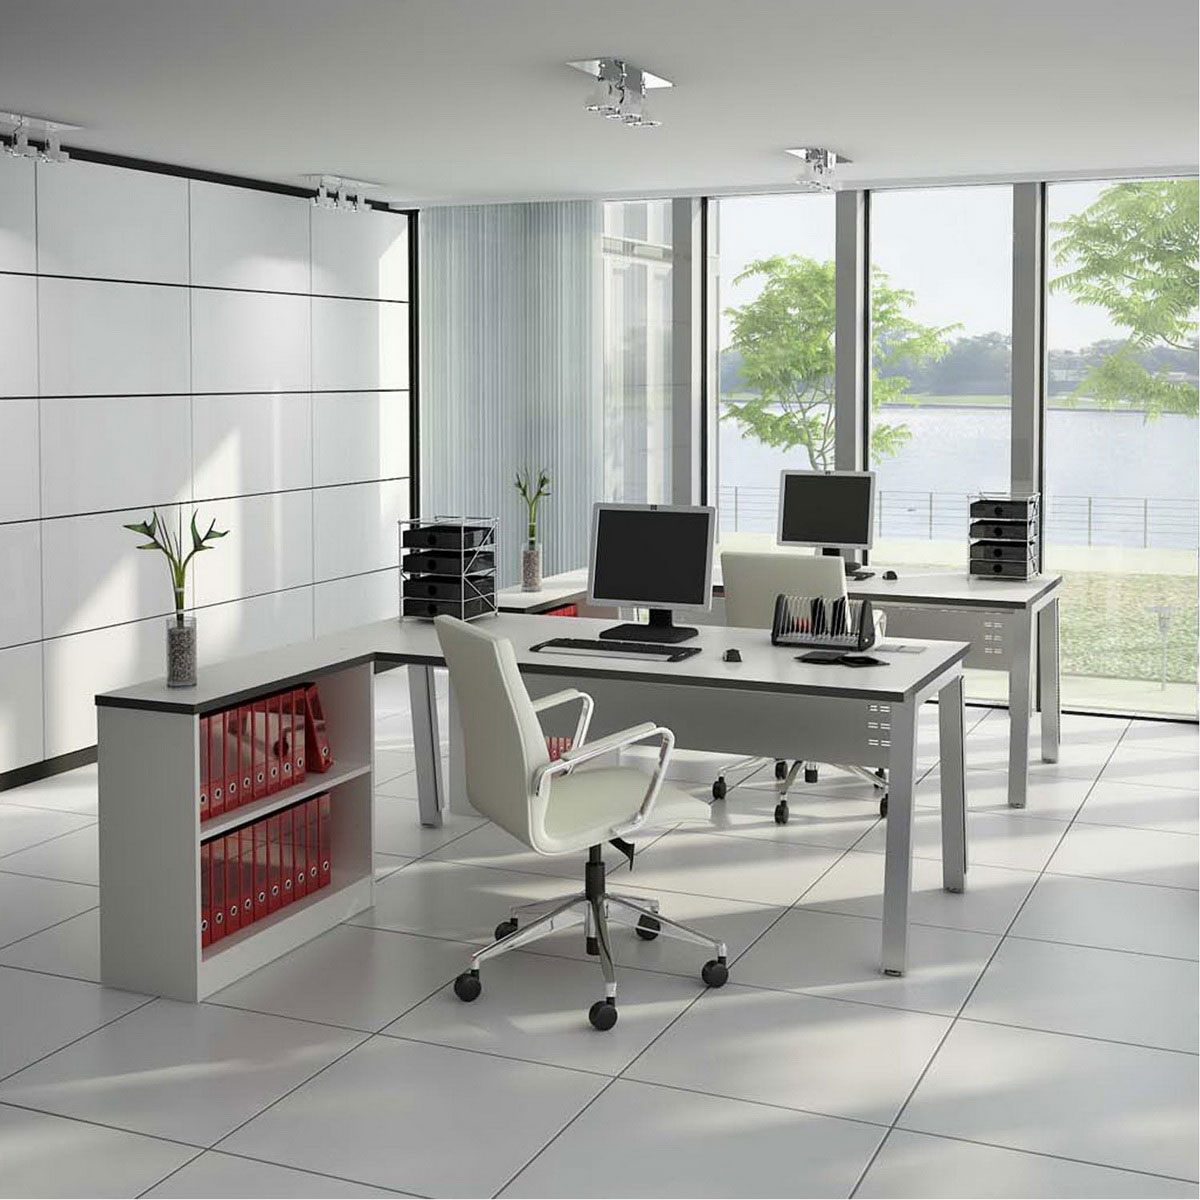 Office interior design dreams house furniture for Home office design 10x10